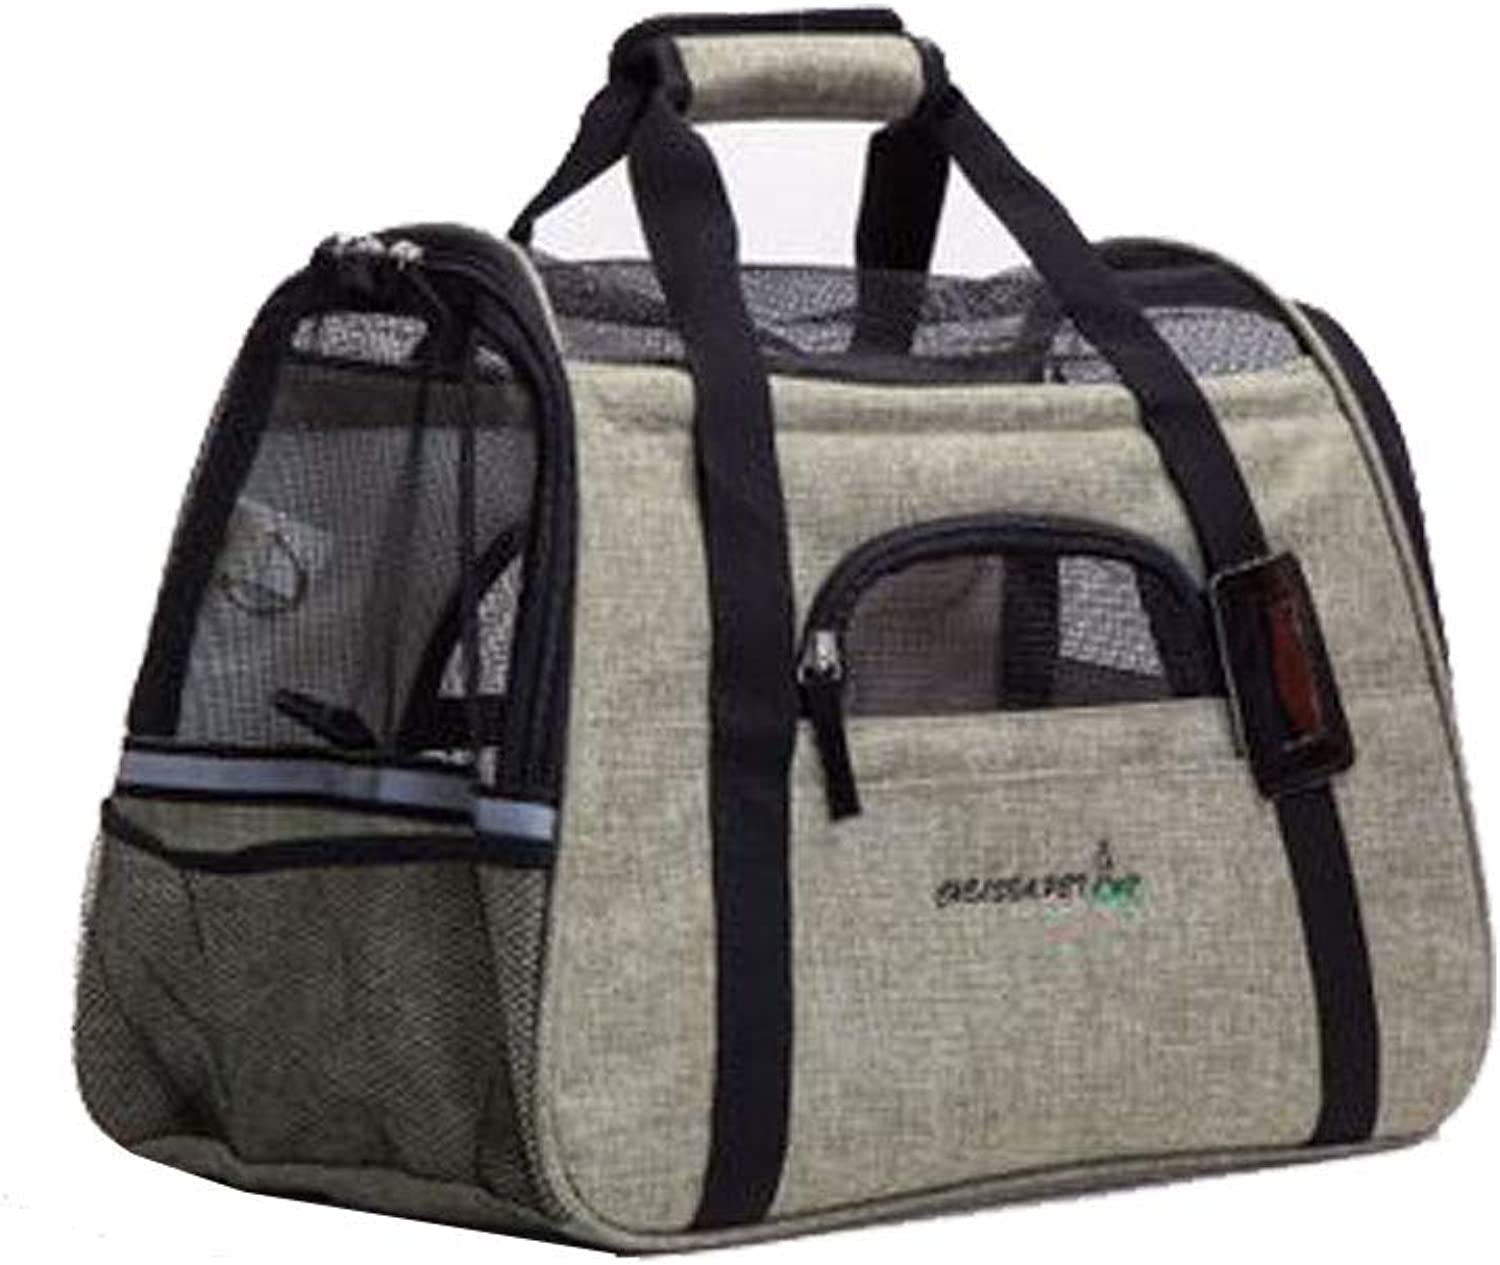 Pet Travel Carrier Dog Cat Puppy Lightweight Luxury Folding Airplane Bag with Soft Cushion